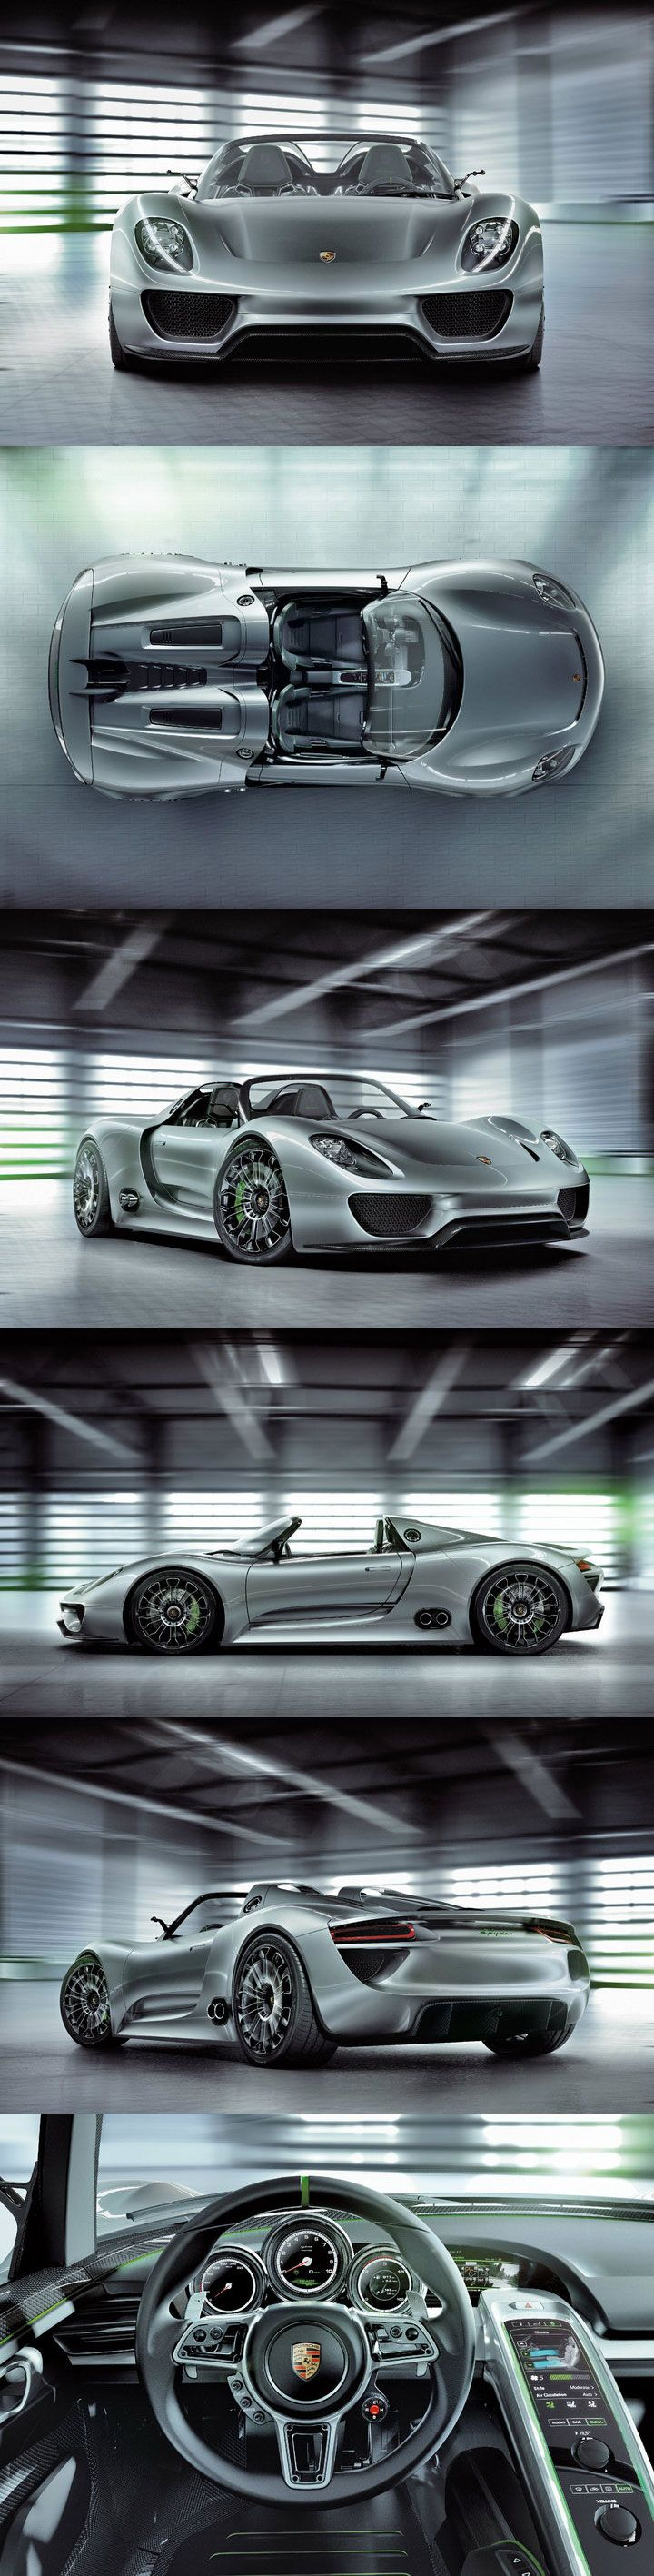 07c8f18fdaf2888db34d3bcefe7f4232--high-tech-geneva Fabulous How Much Does the Porsche 918 Spyder Concept Cost In Real Racing 3 Cars Trend